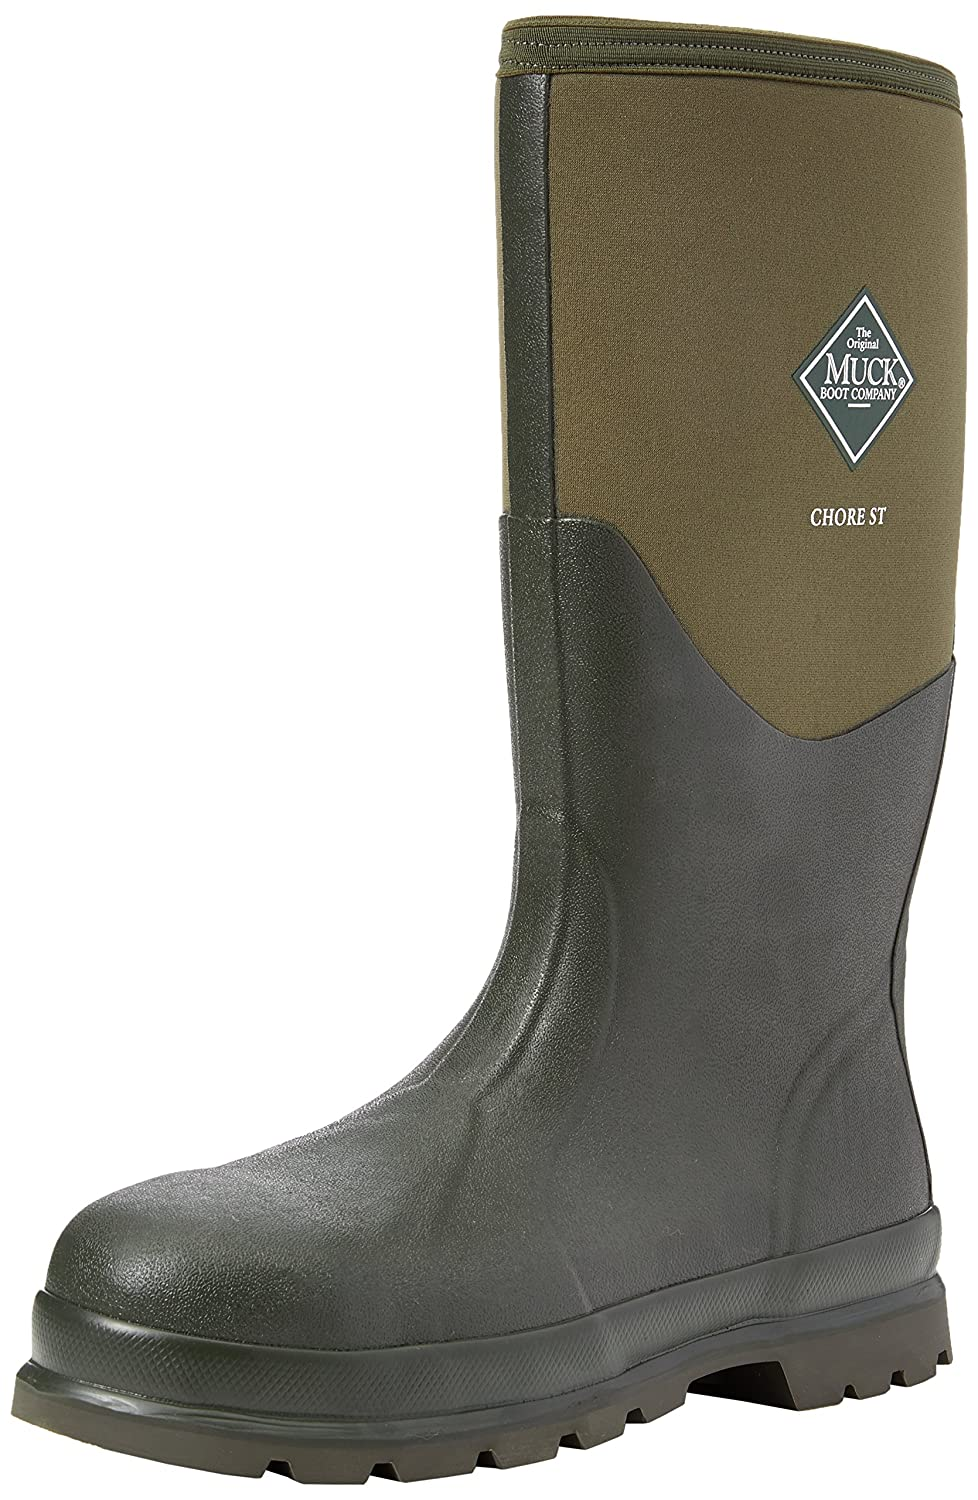 b62cc8f34d7 Muck Boots Unisex Adults' Chore Steel Toe Safety Wellingtons